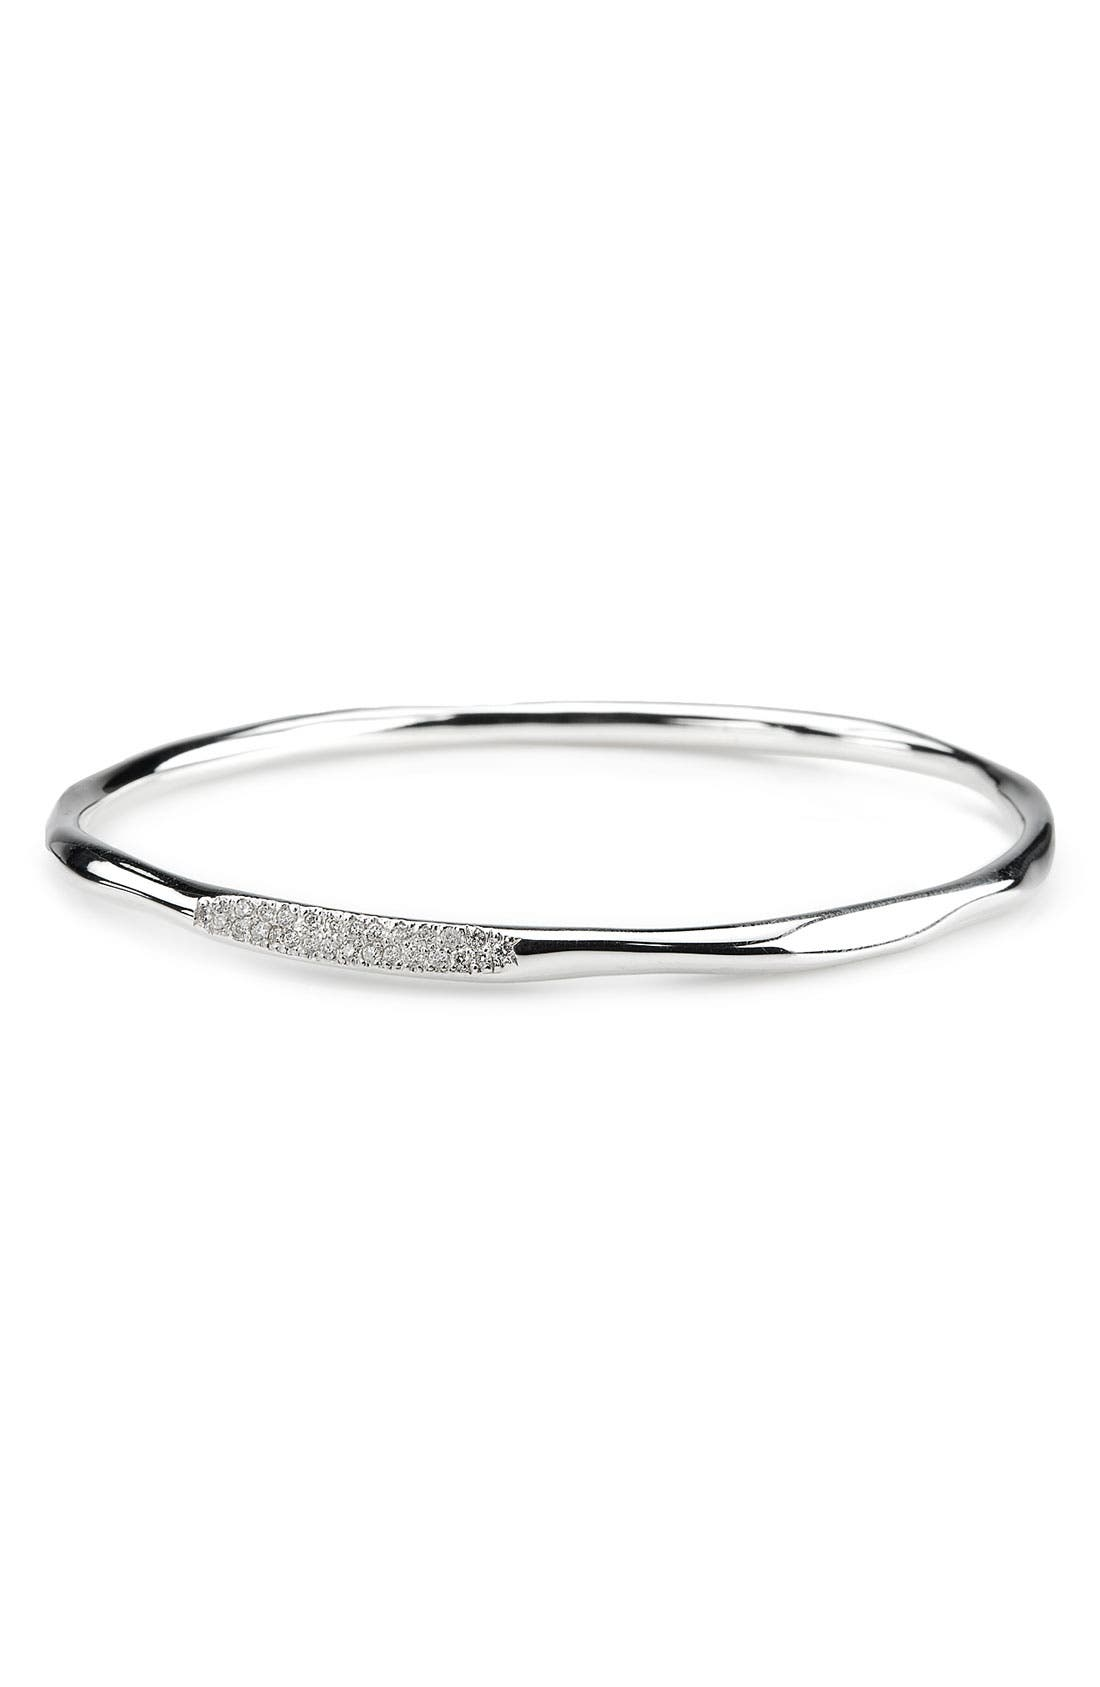 Main Image - Ippolita 'Silver Rain' Diamond Pavé Bangle